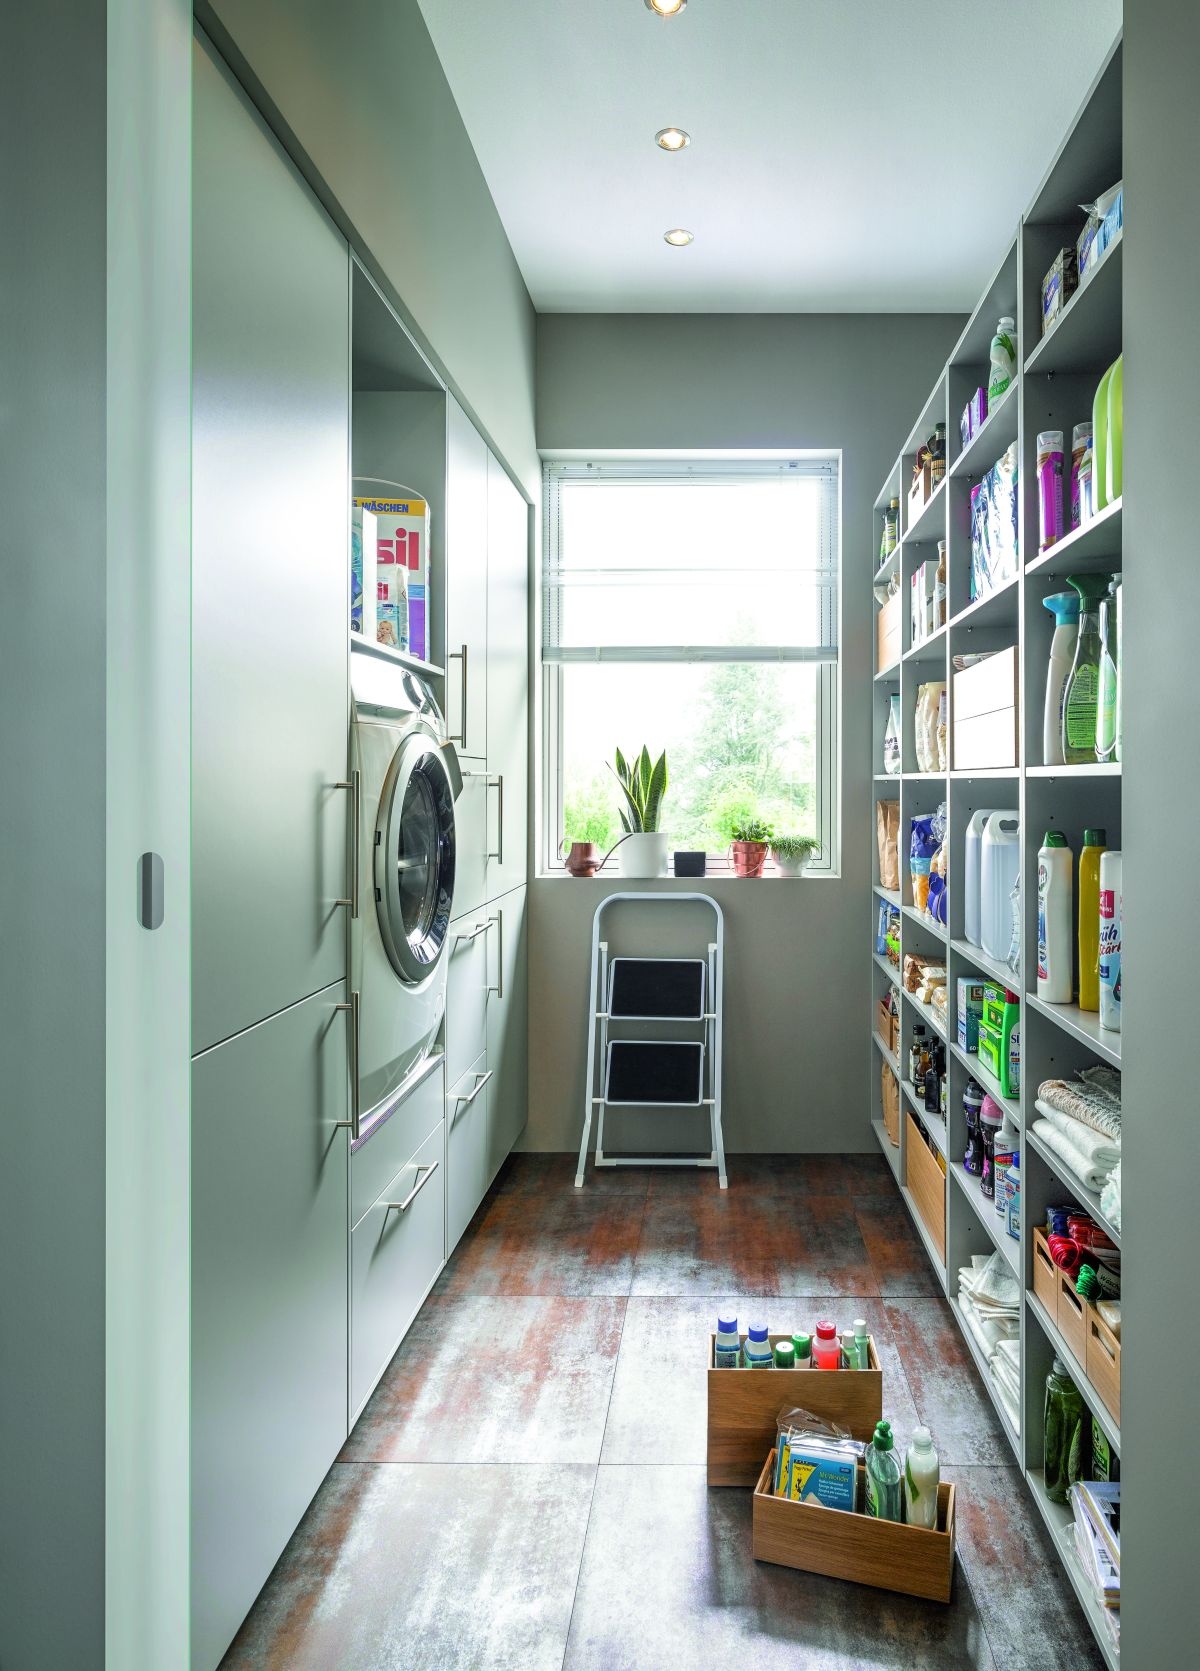 Utility room ideas: 26 ways to organise your laundry room  Real Homes